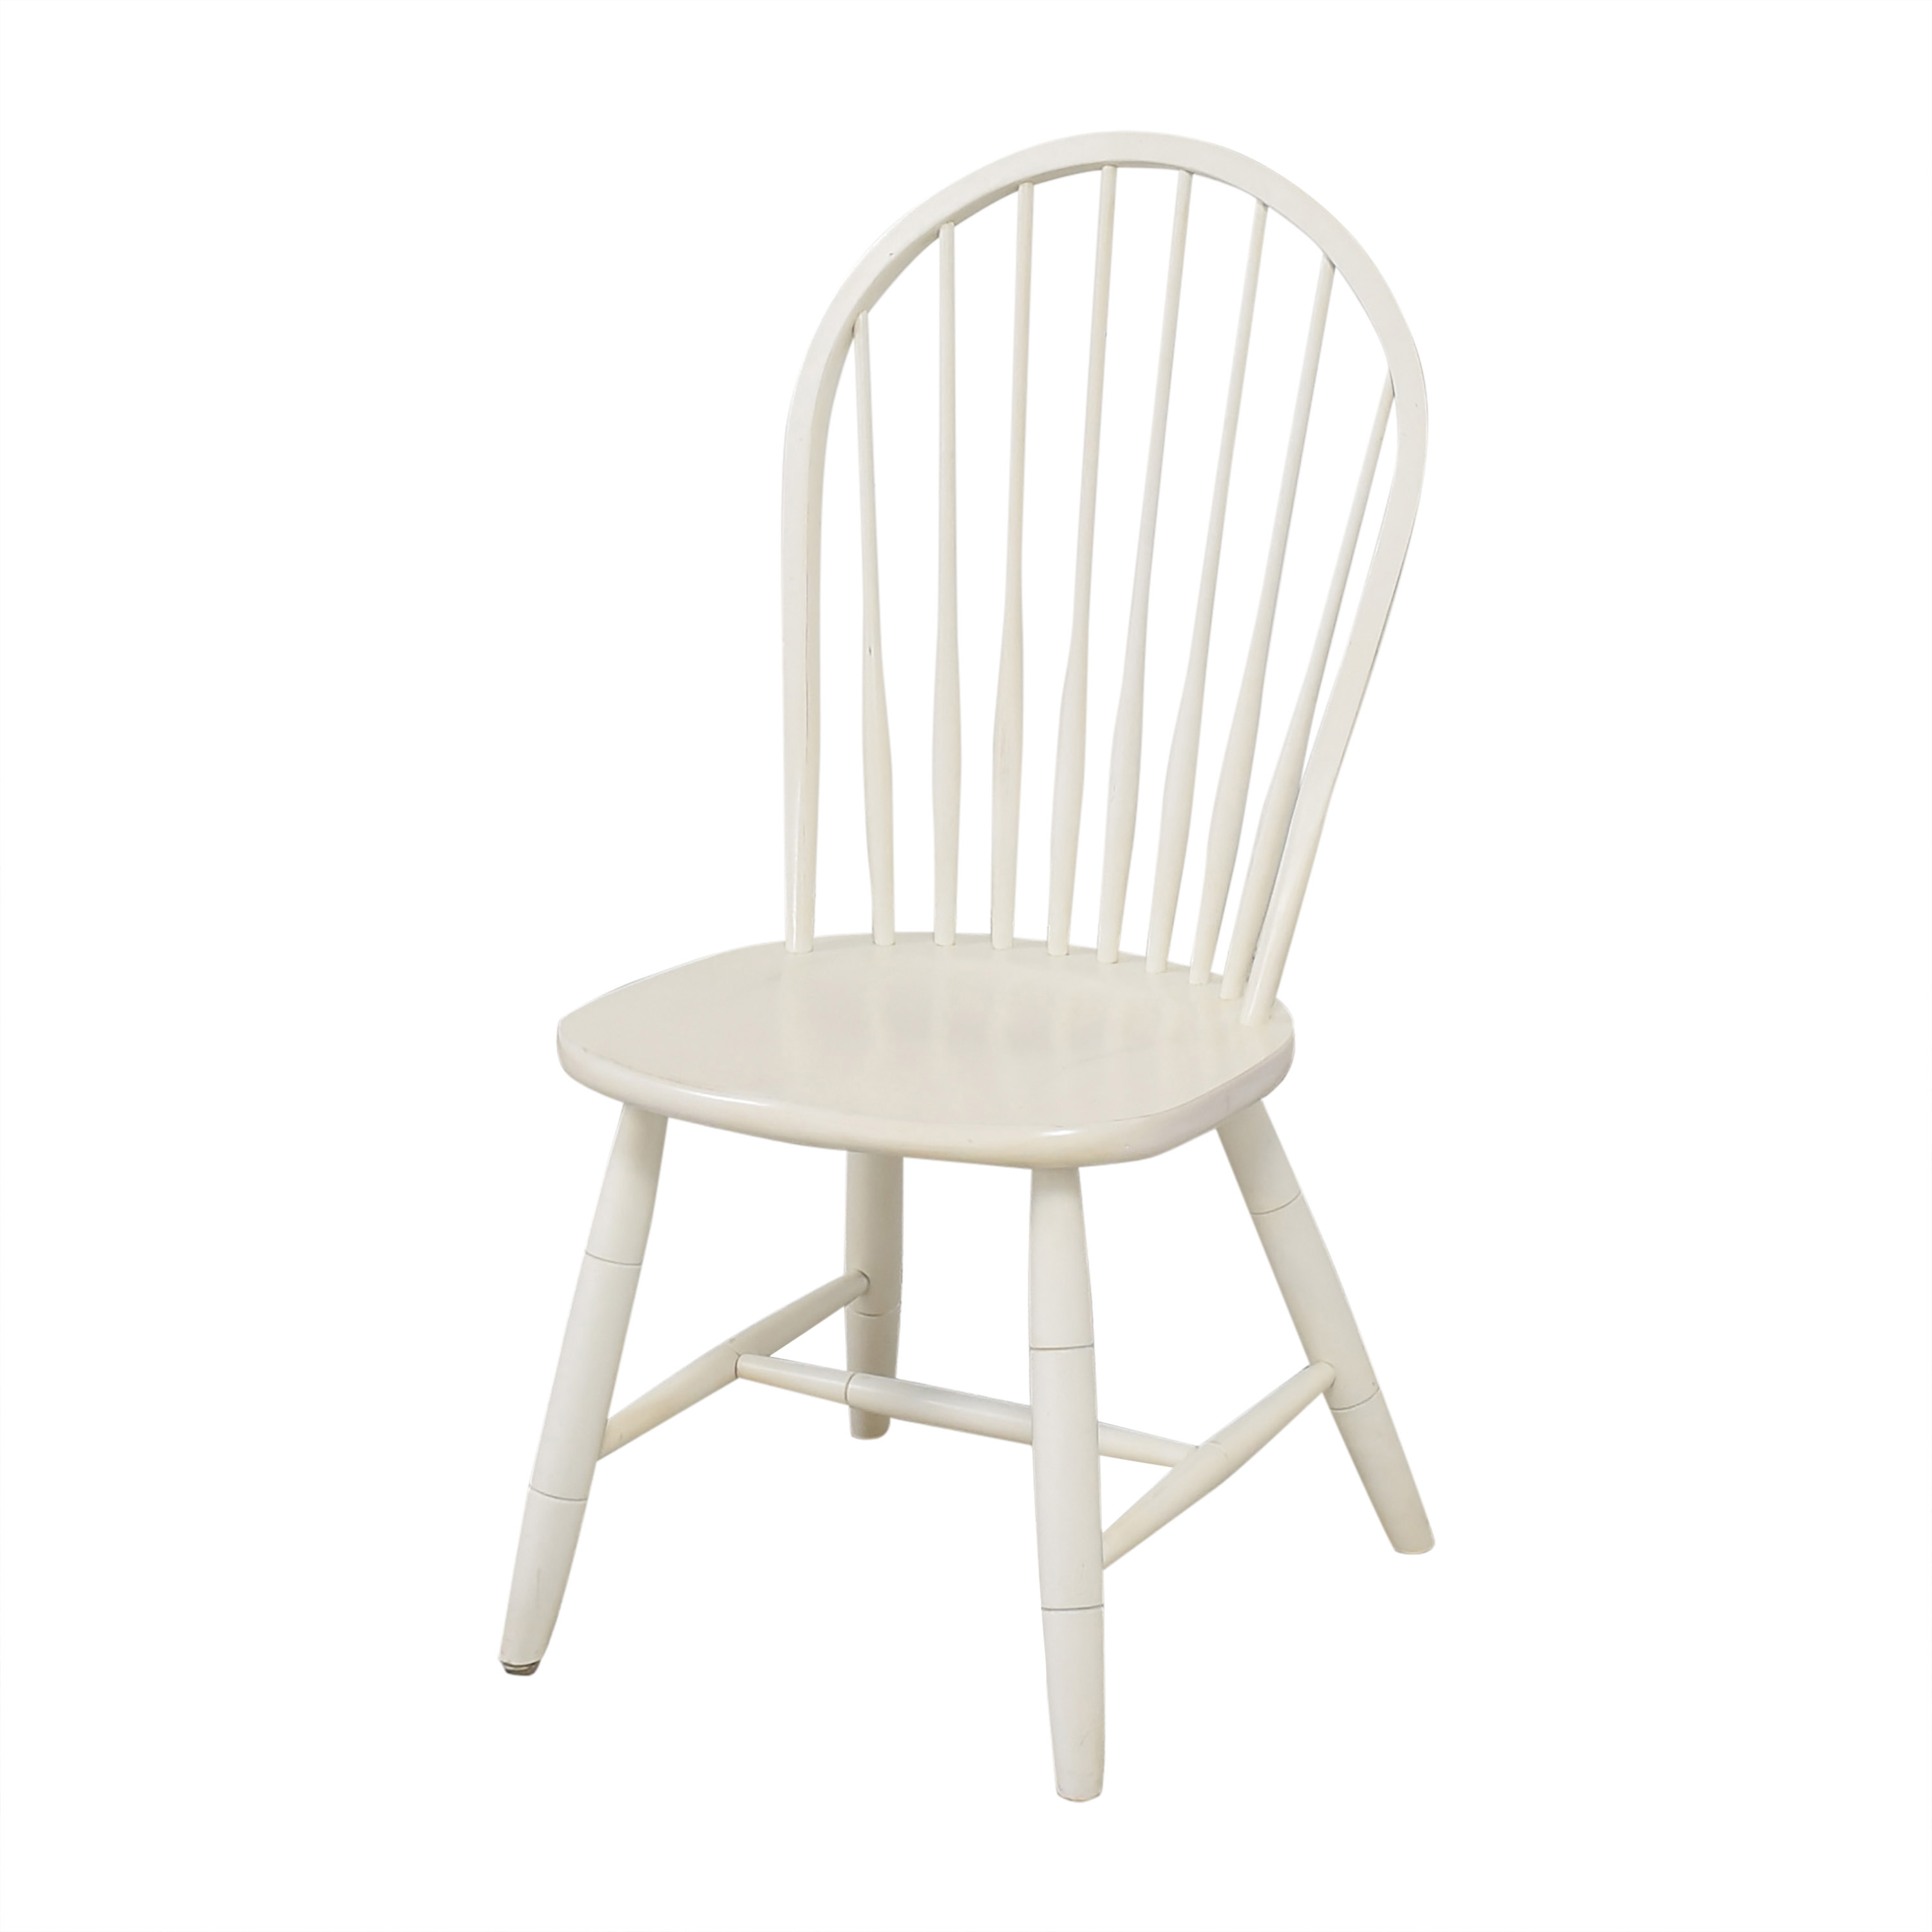 Ethan Allen Gilbert Dining Side Chairs / Dining Chairs